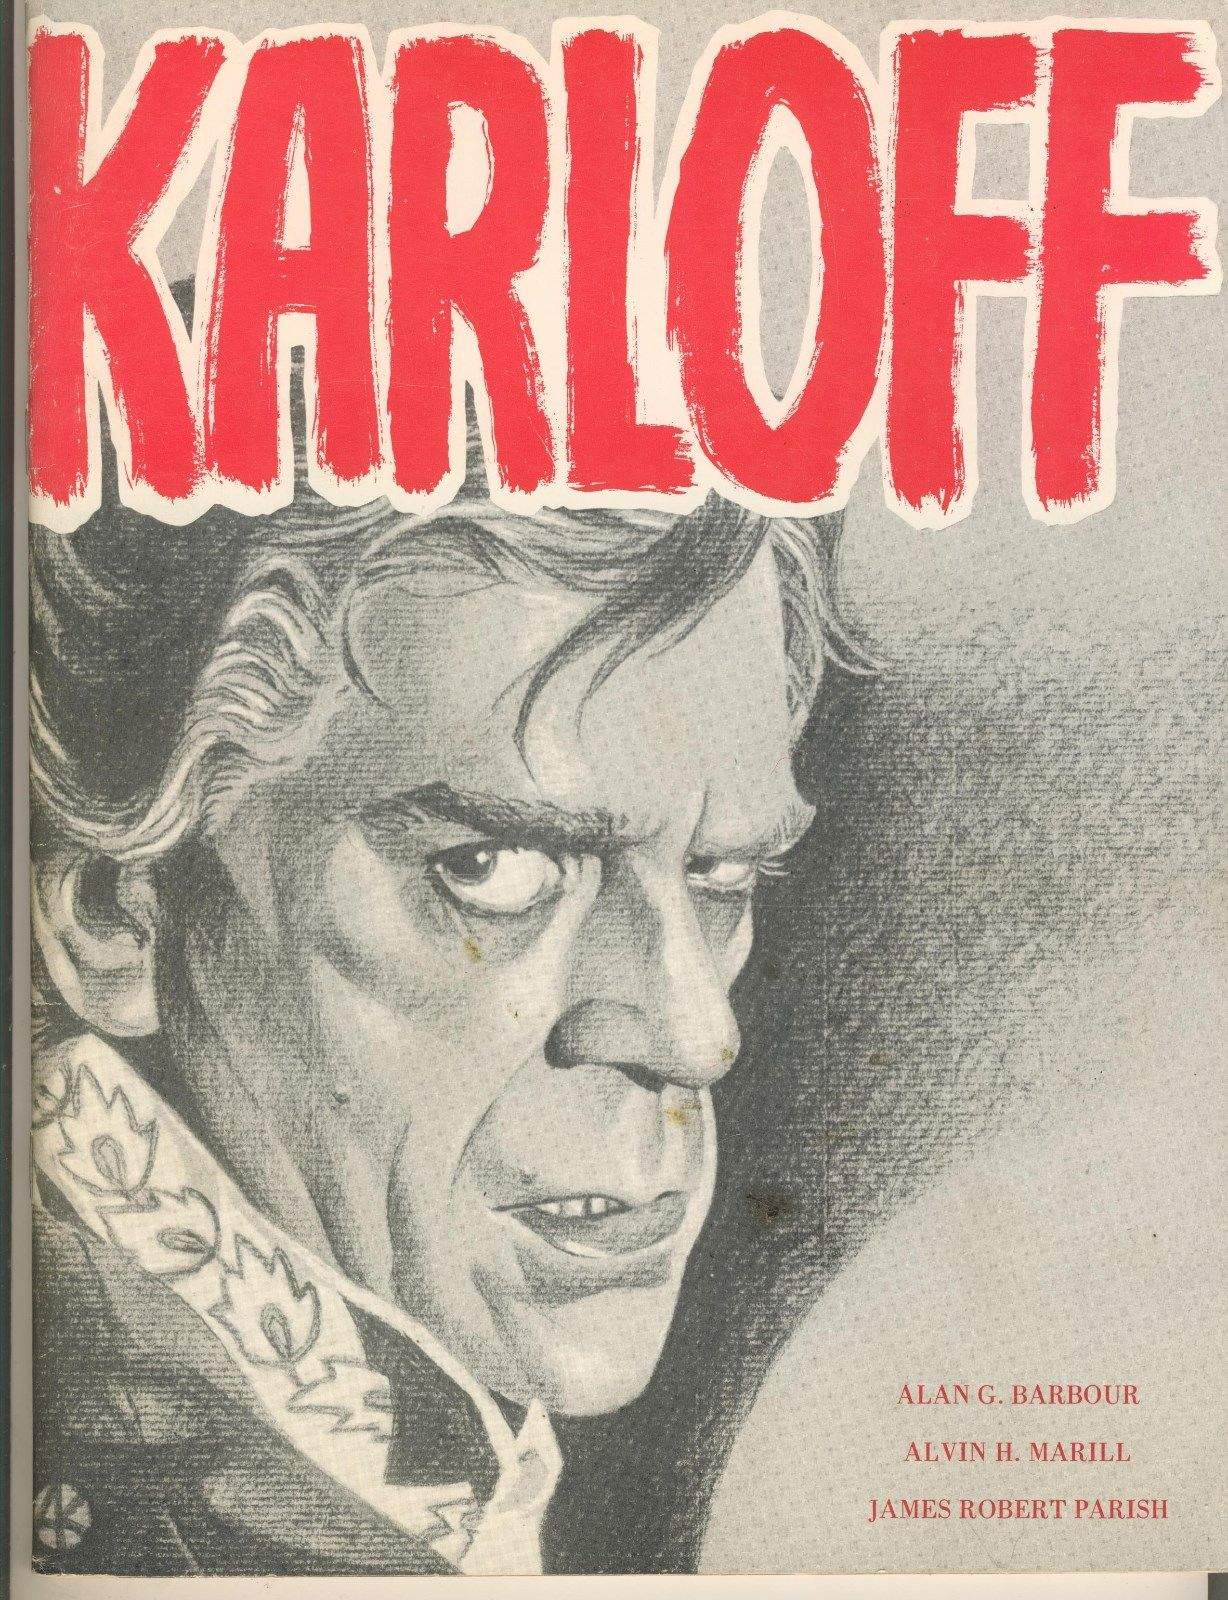 BORIS KARLOFF Photo Book Universal Monsters Roles Forrest Ackerman Collection